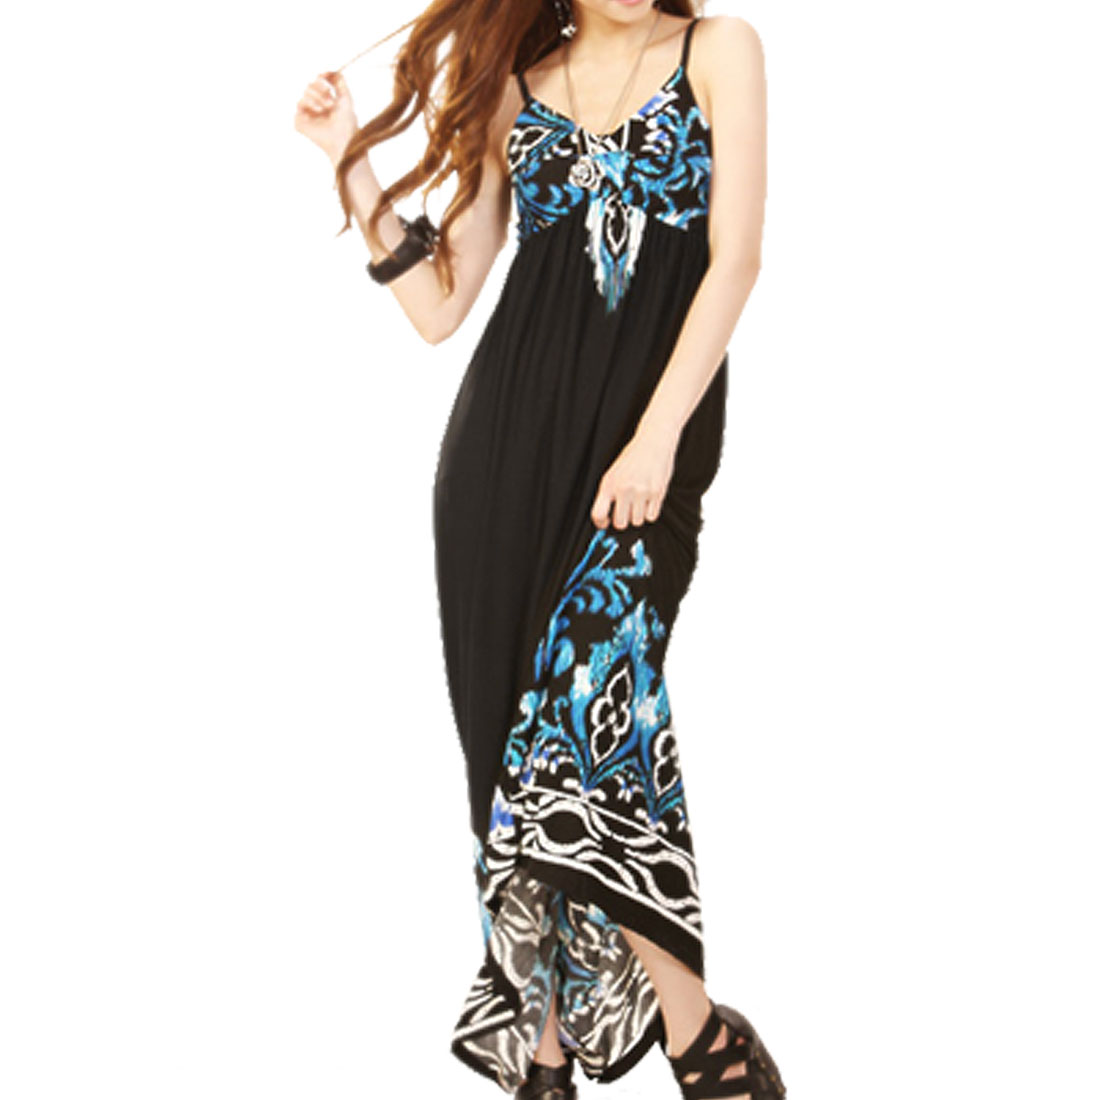 118001 Lady Blue Padded Bust Straps Full Dress/XS (US 0)